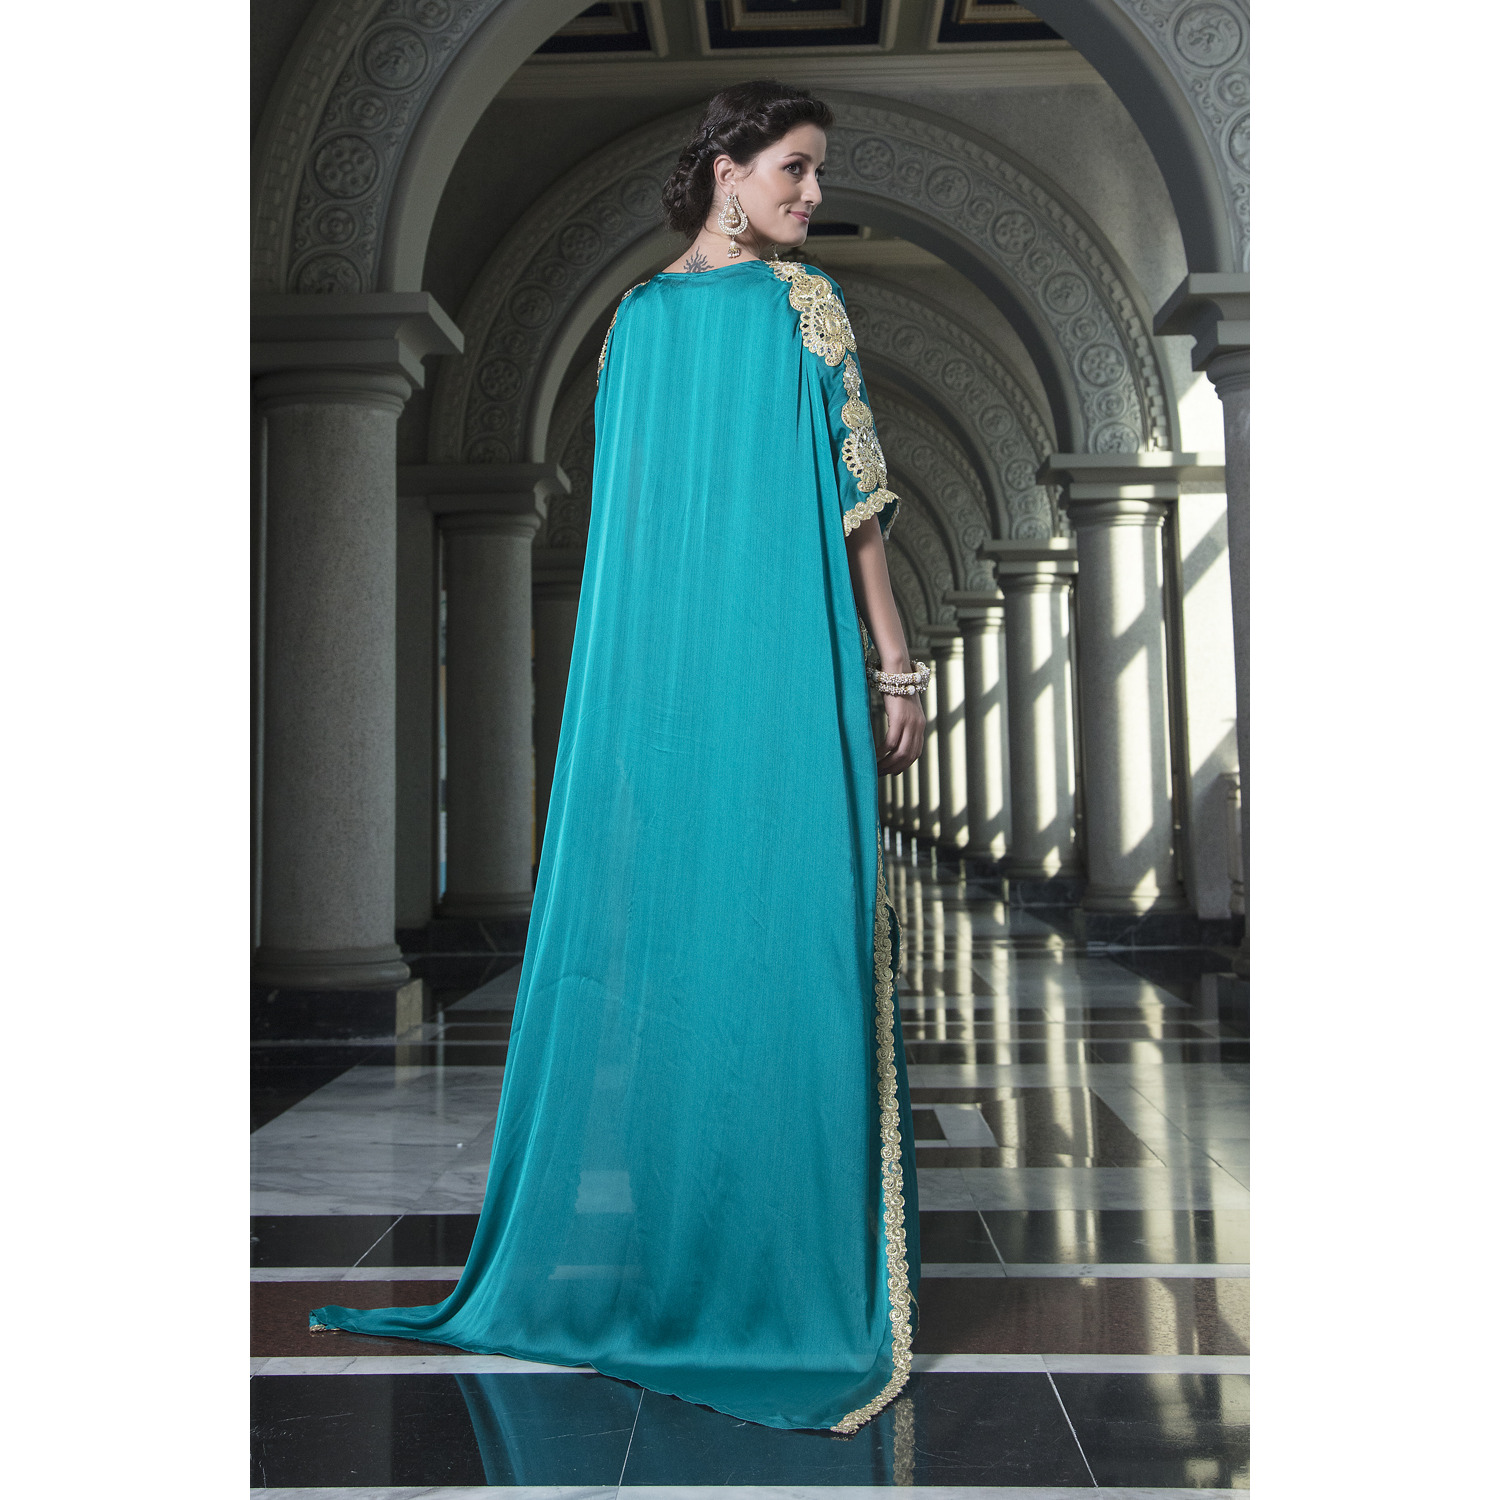 Evening Dress Sea Green Color Arabic Free Size Kaftan Ethnic wear